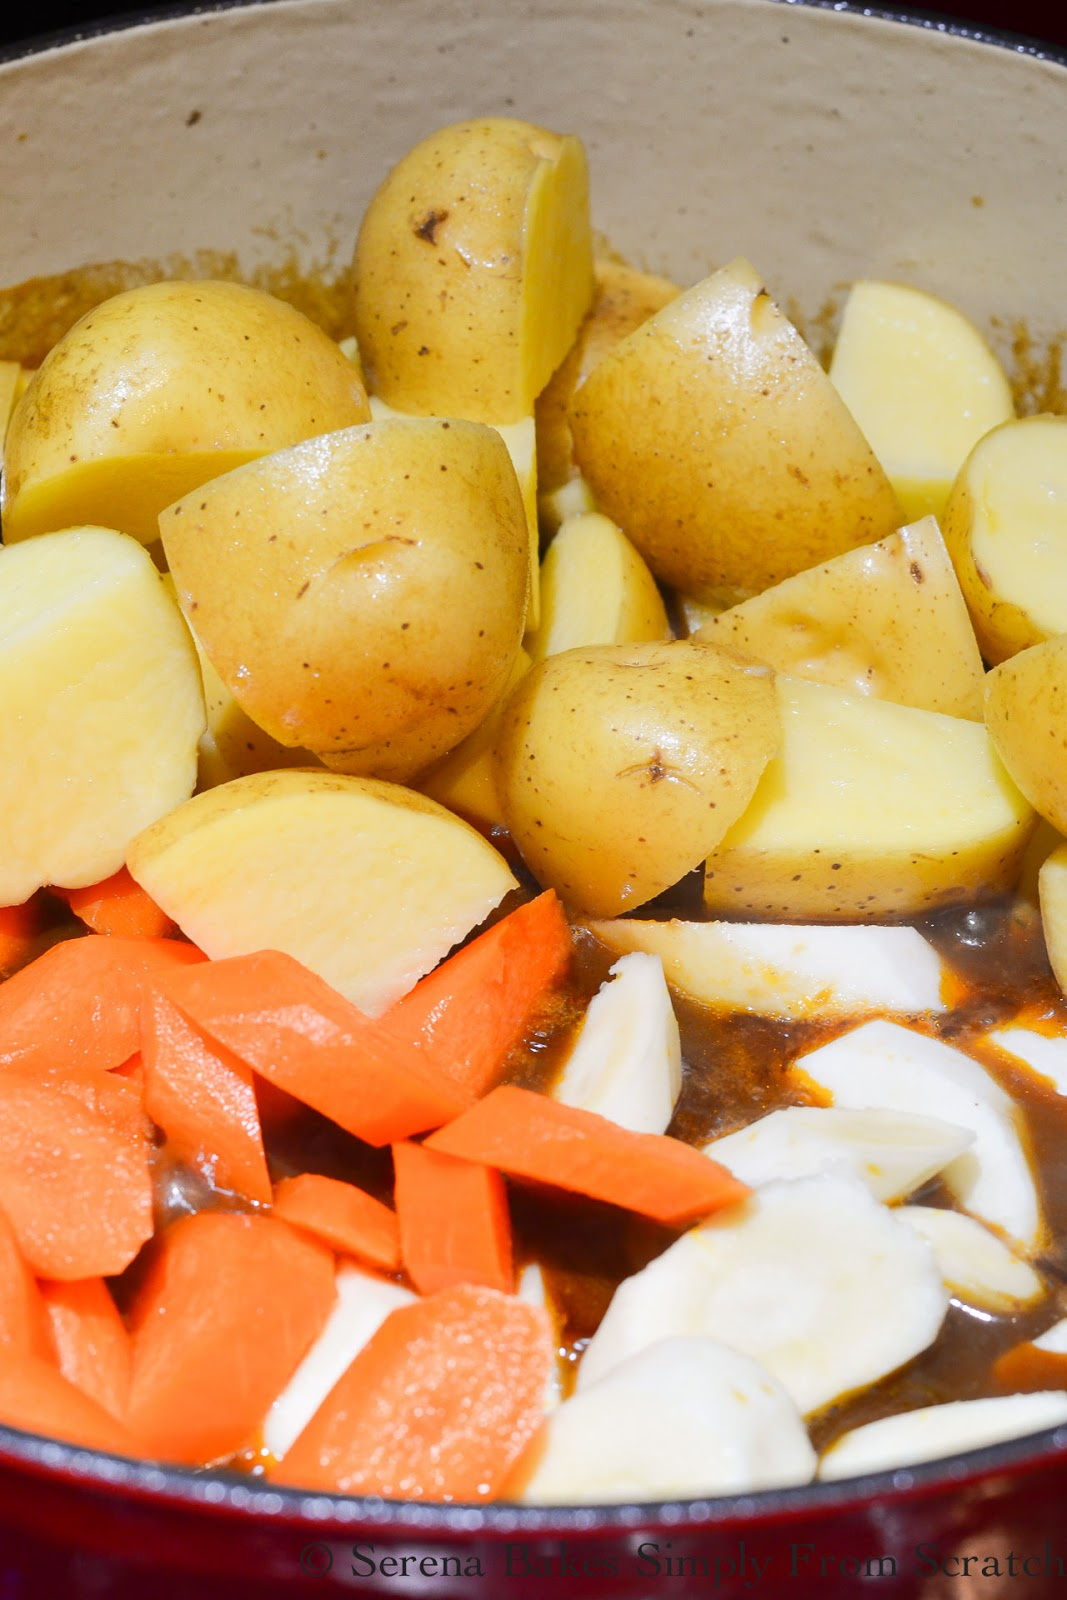 Irish Guinness Beef Stew recipe with a hearty gravy, yukon gold potatoes, carrots, and parsnips.